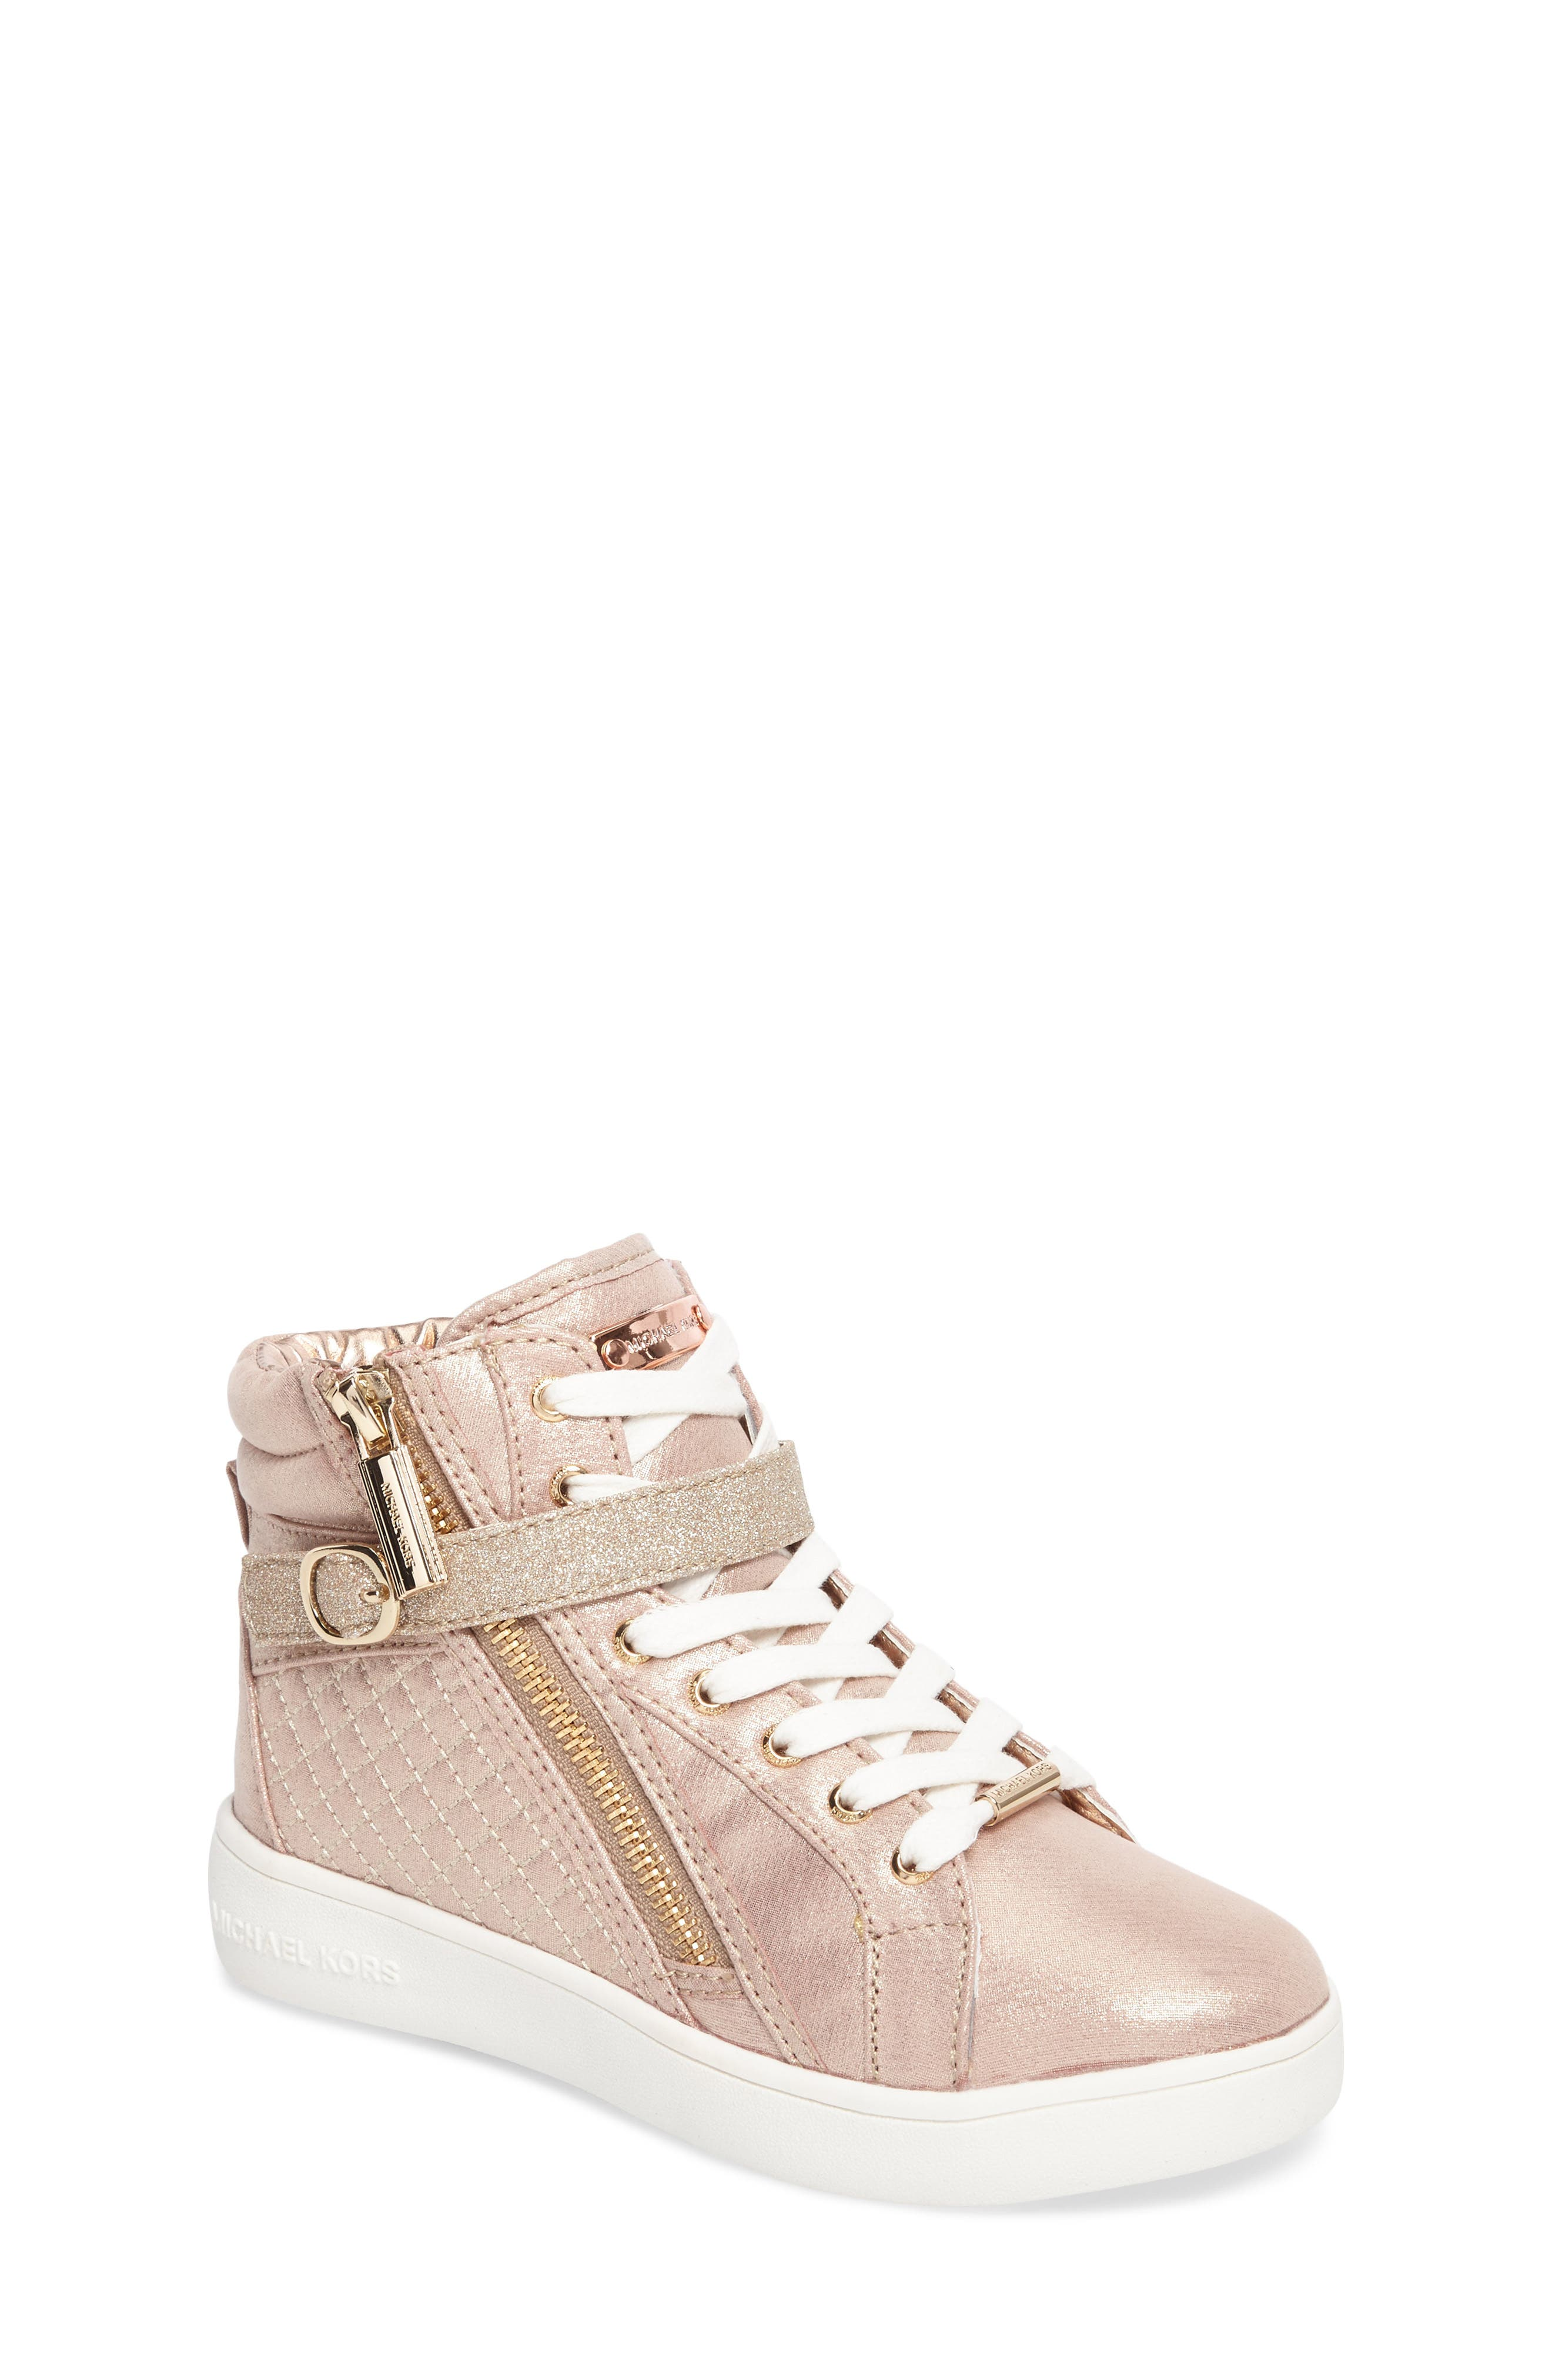 Ivy Rio Glittery High Top Sneaker,                             Main thumbnail 1, color,                             220